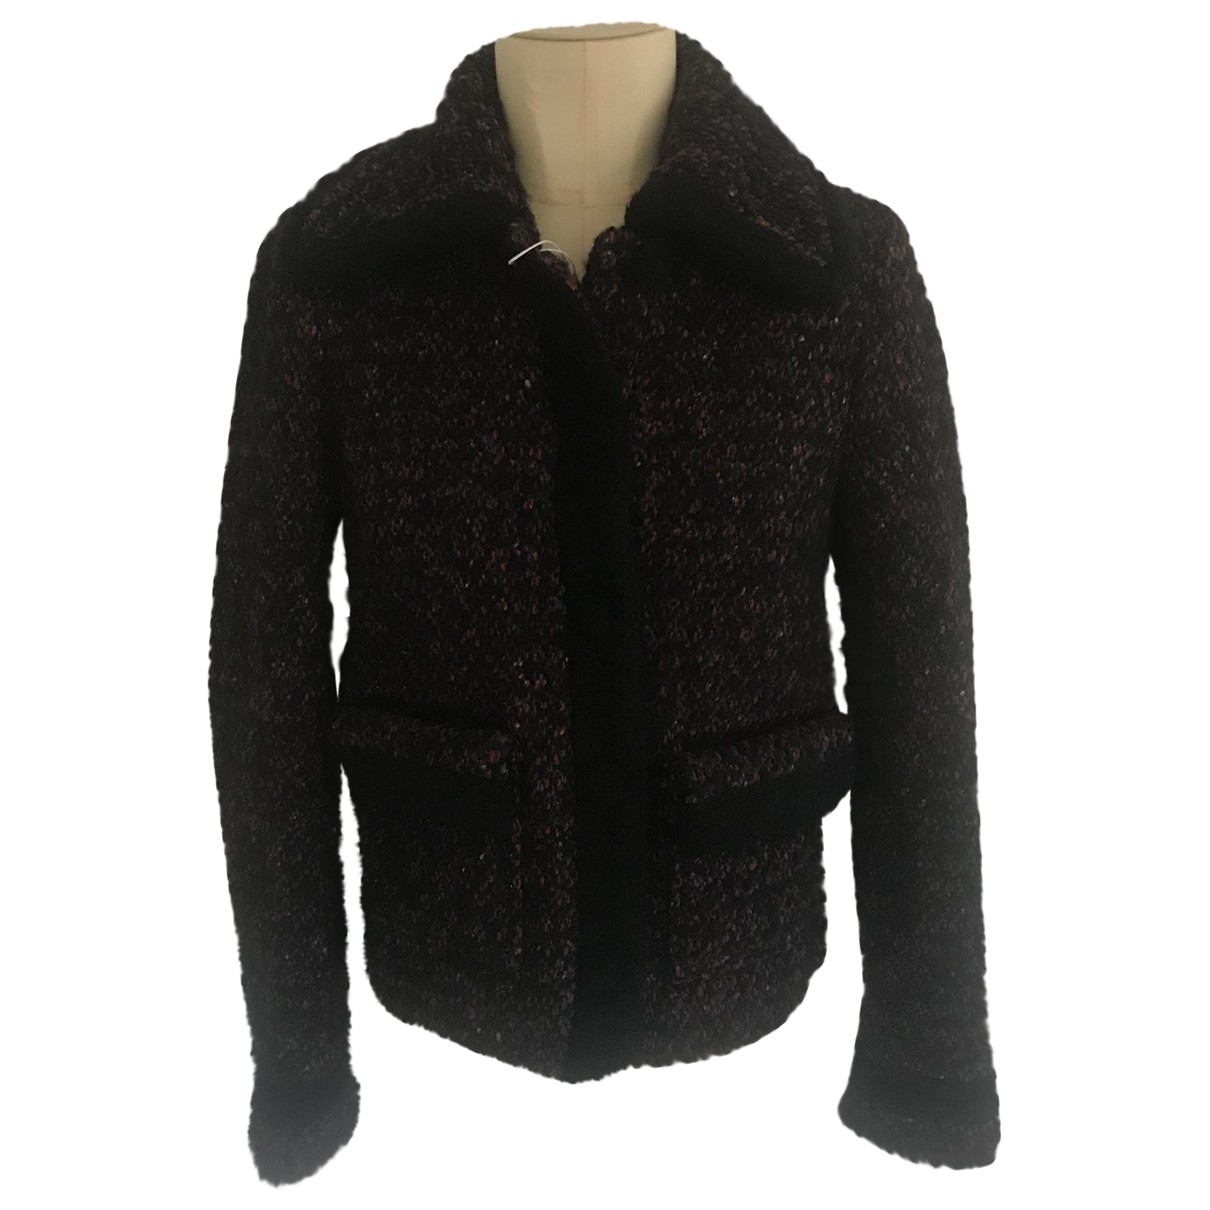 Philosophy Di Lorenzo Serafini \N Wool jacket for Women 40 IT